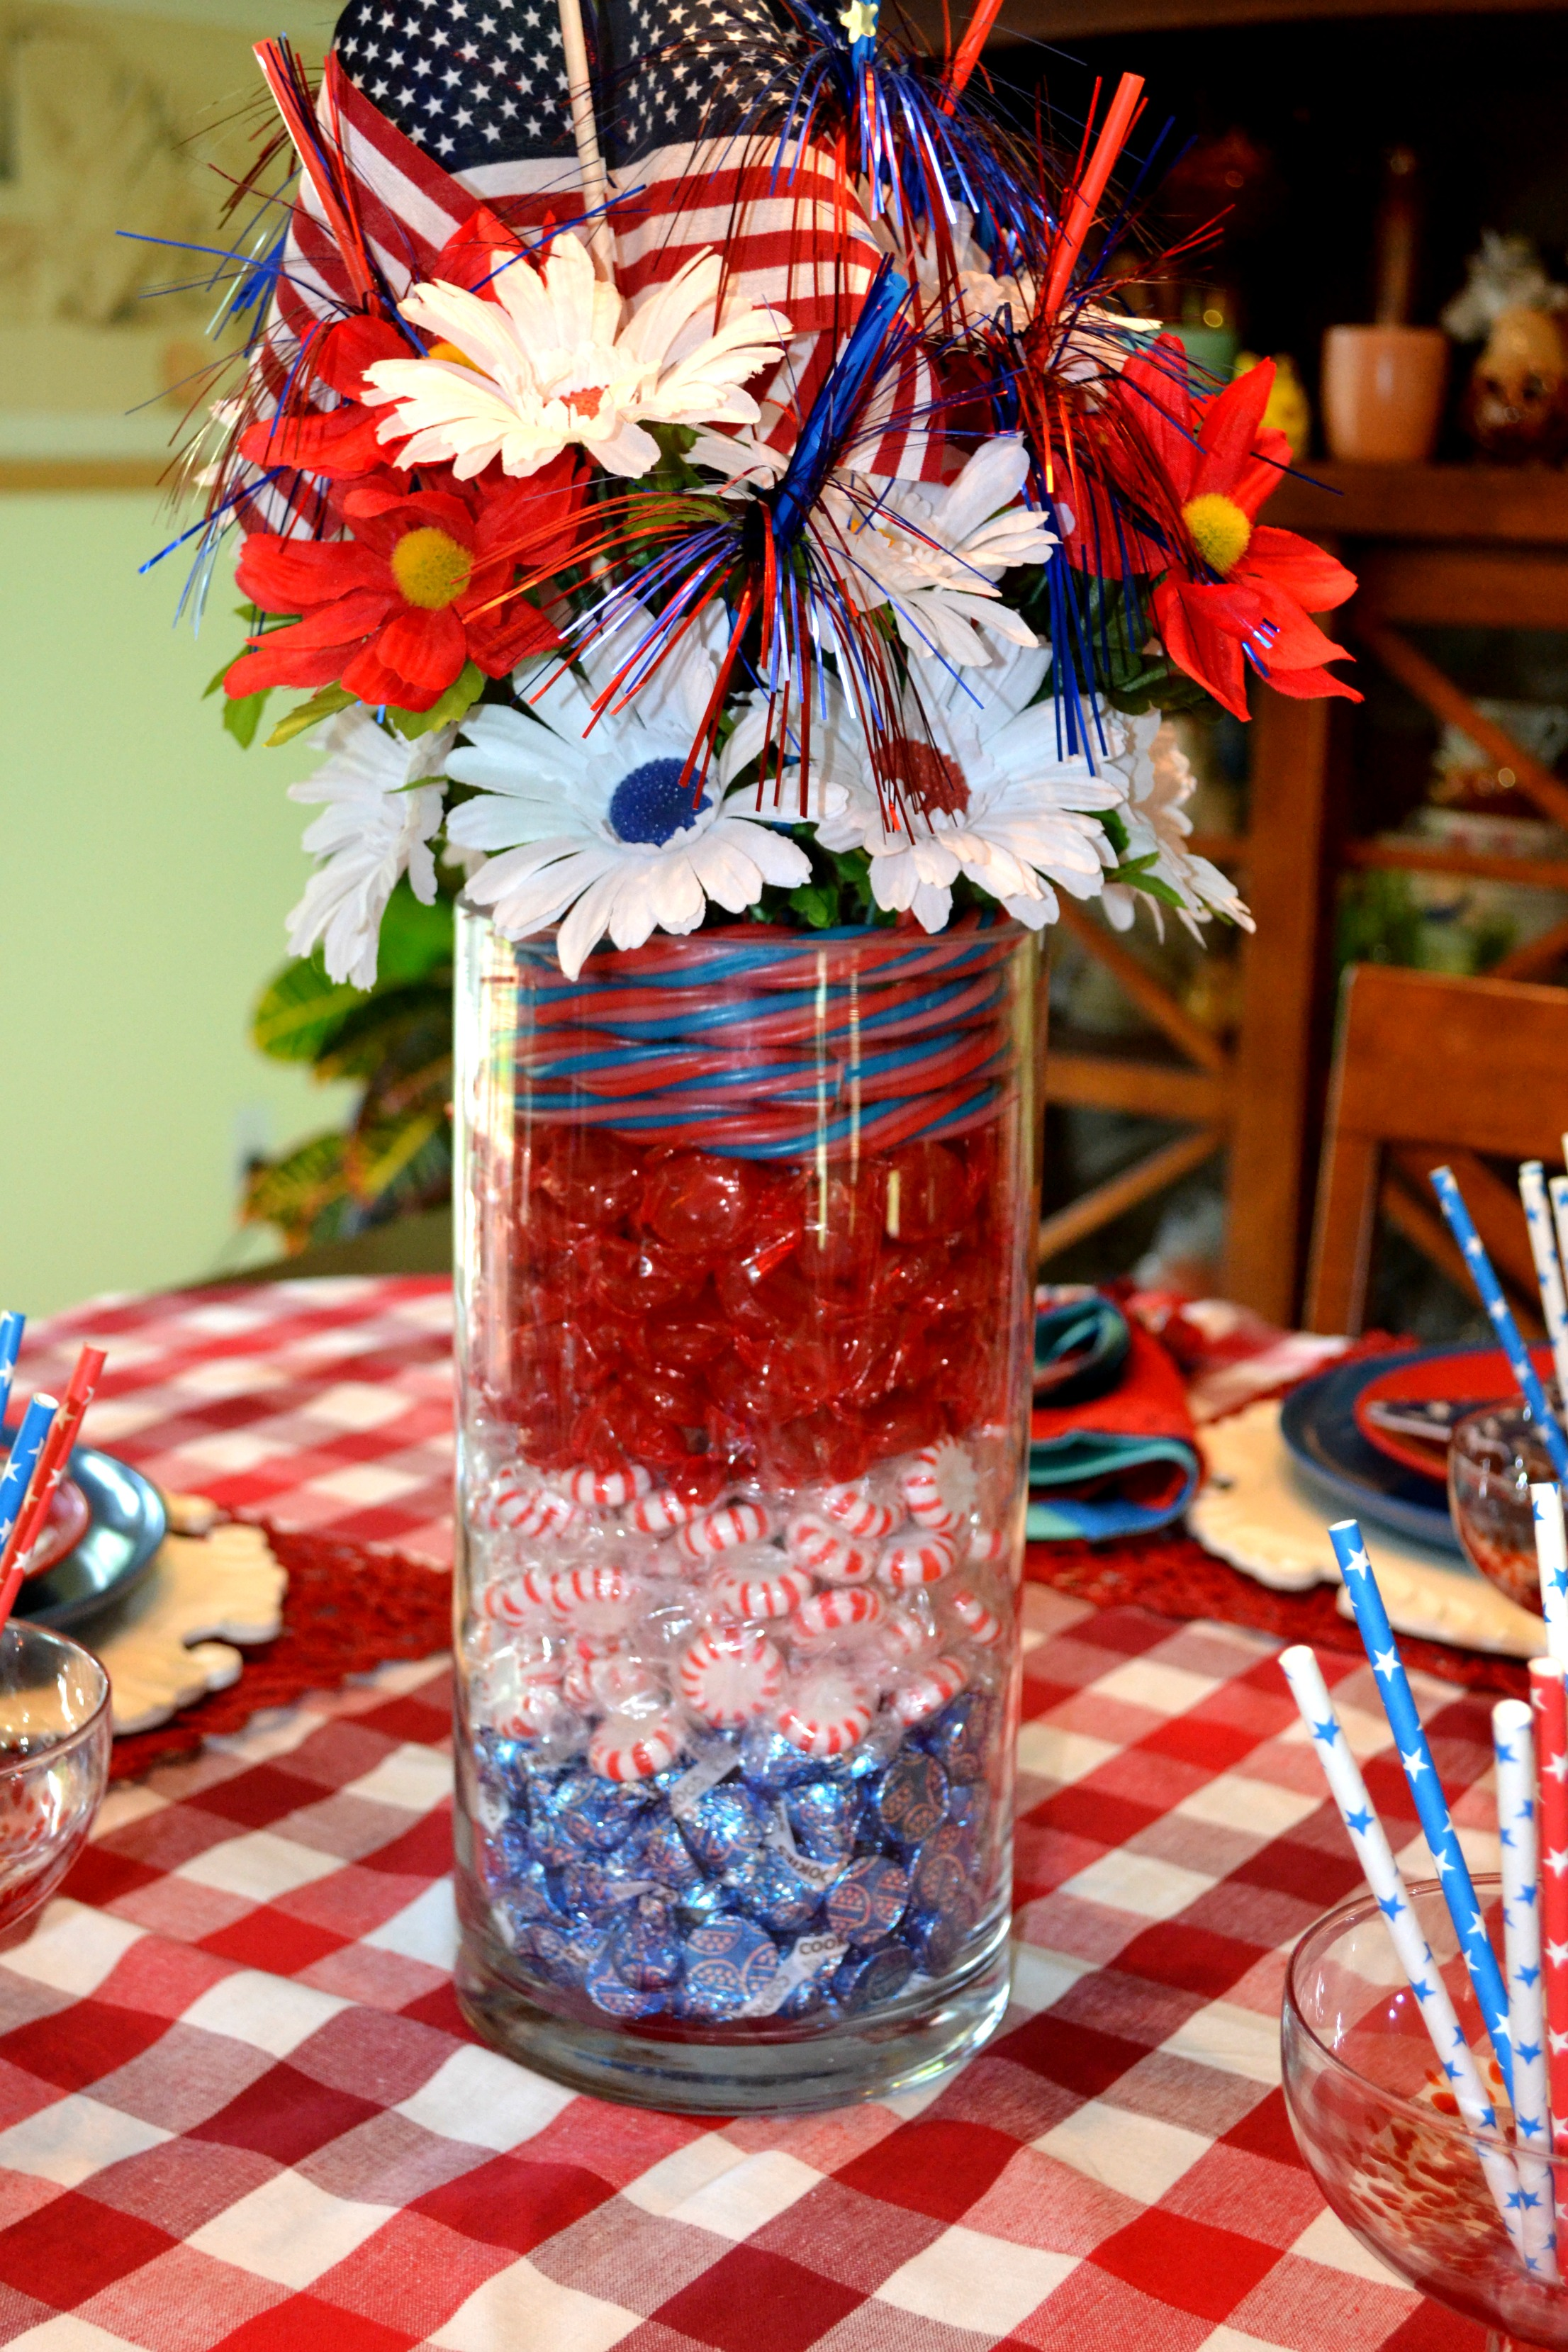 July 4th Candy Centerpiece and Table